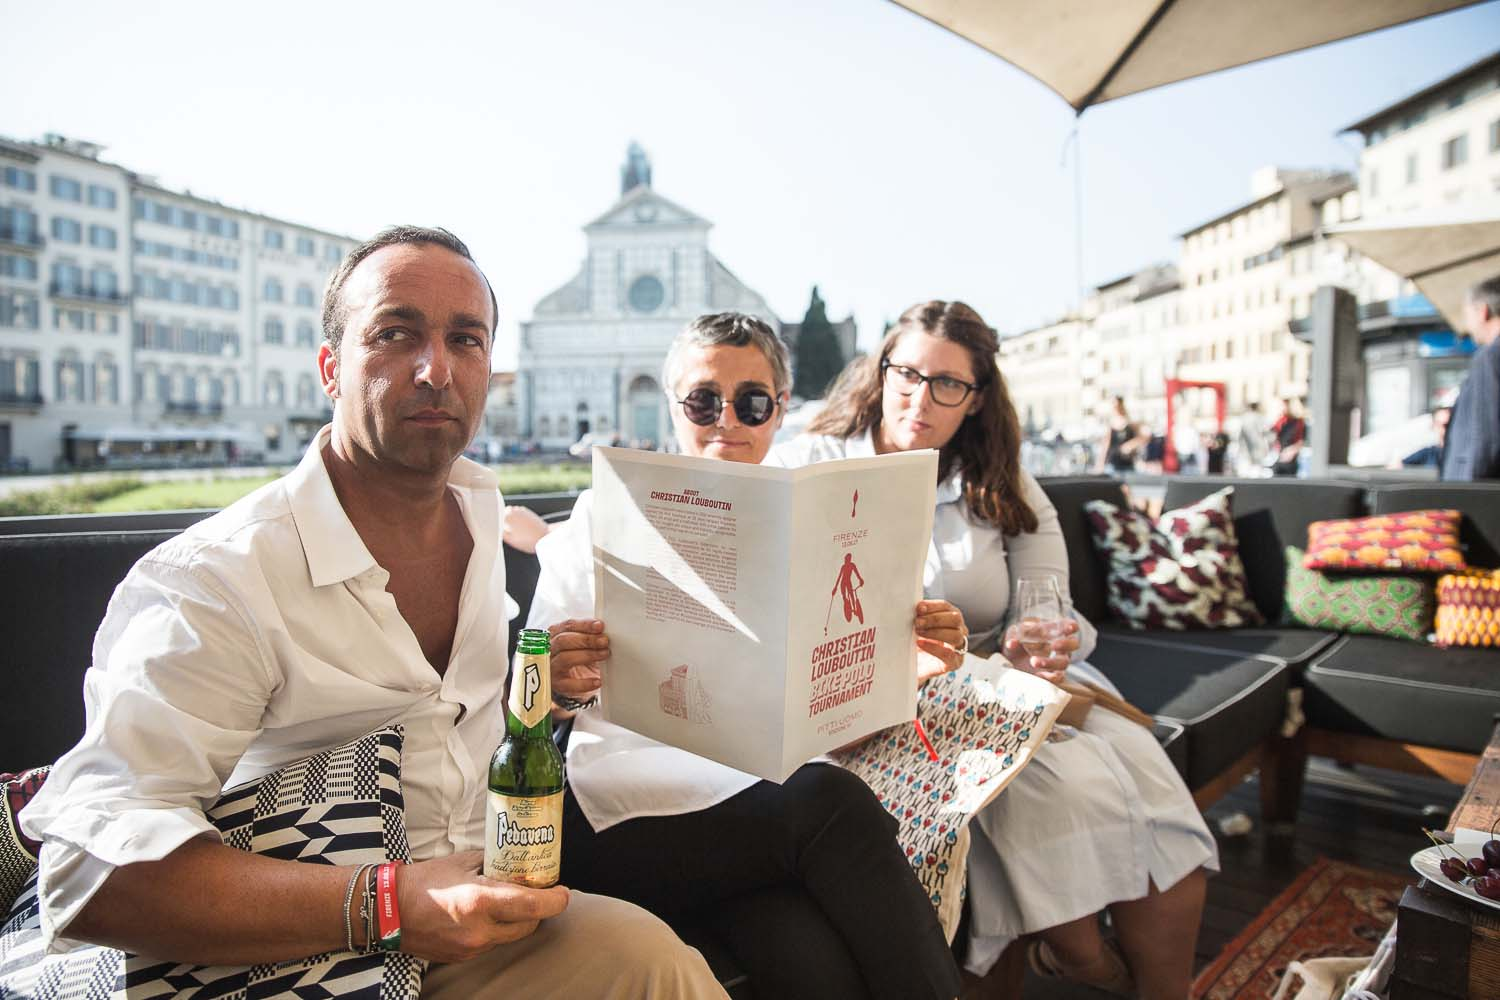 Guests can take refuge and read the cycling polo game Gazetta.